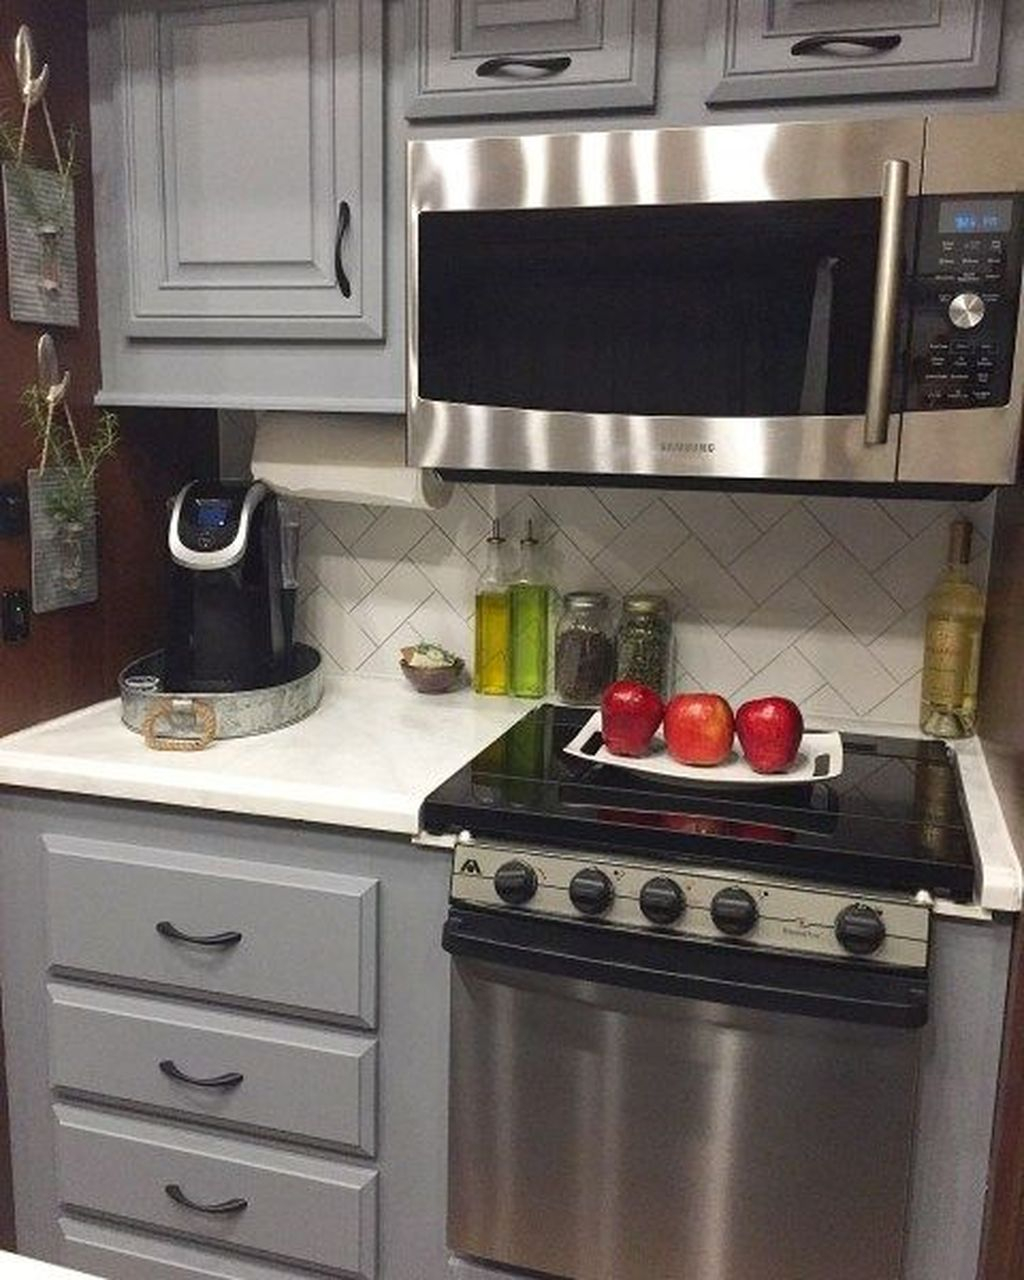 Relaxing Rv Kitchen Design Ideas For More Comfortable Cooking During The Holiday 01